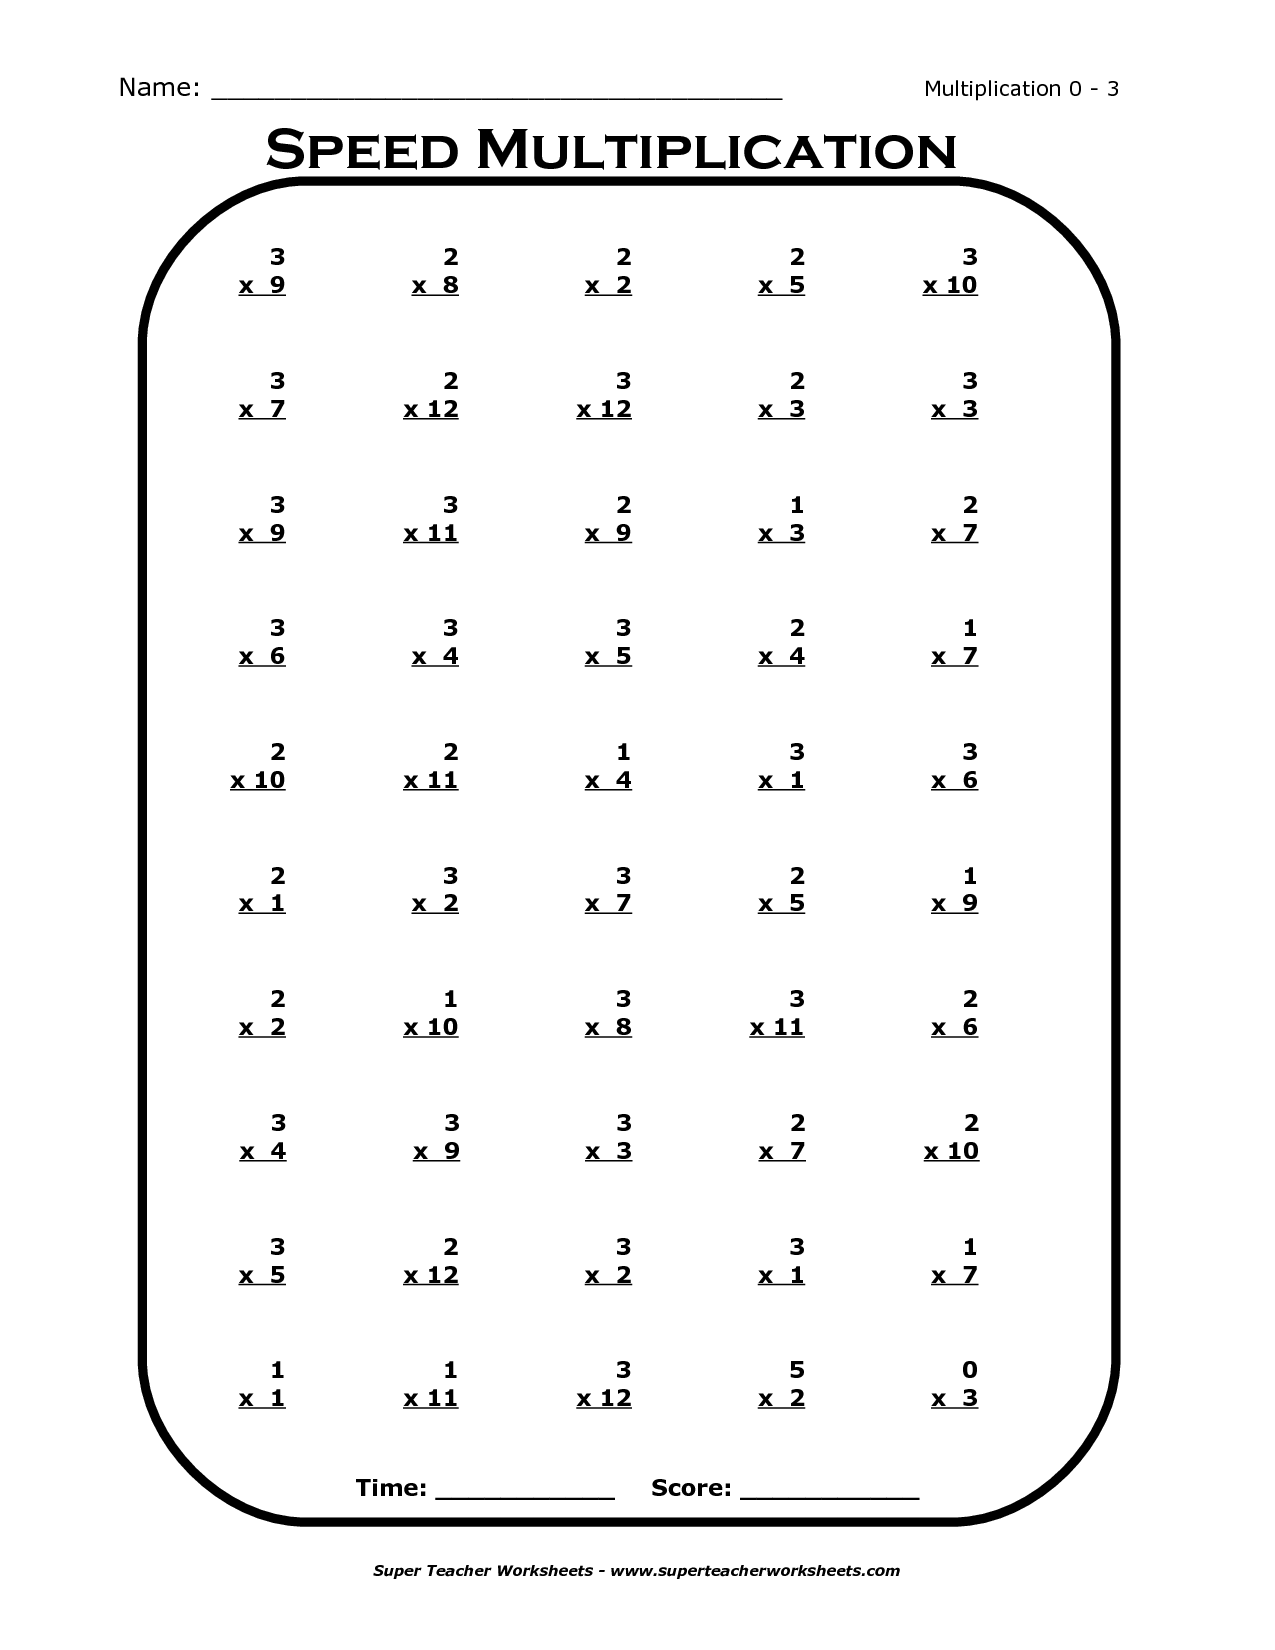 Multiplication Times Table Worksheets Davezan – Multiplication Worksheets 2 3 4 5 10